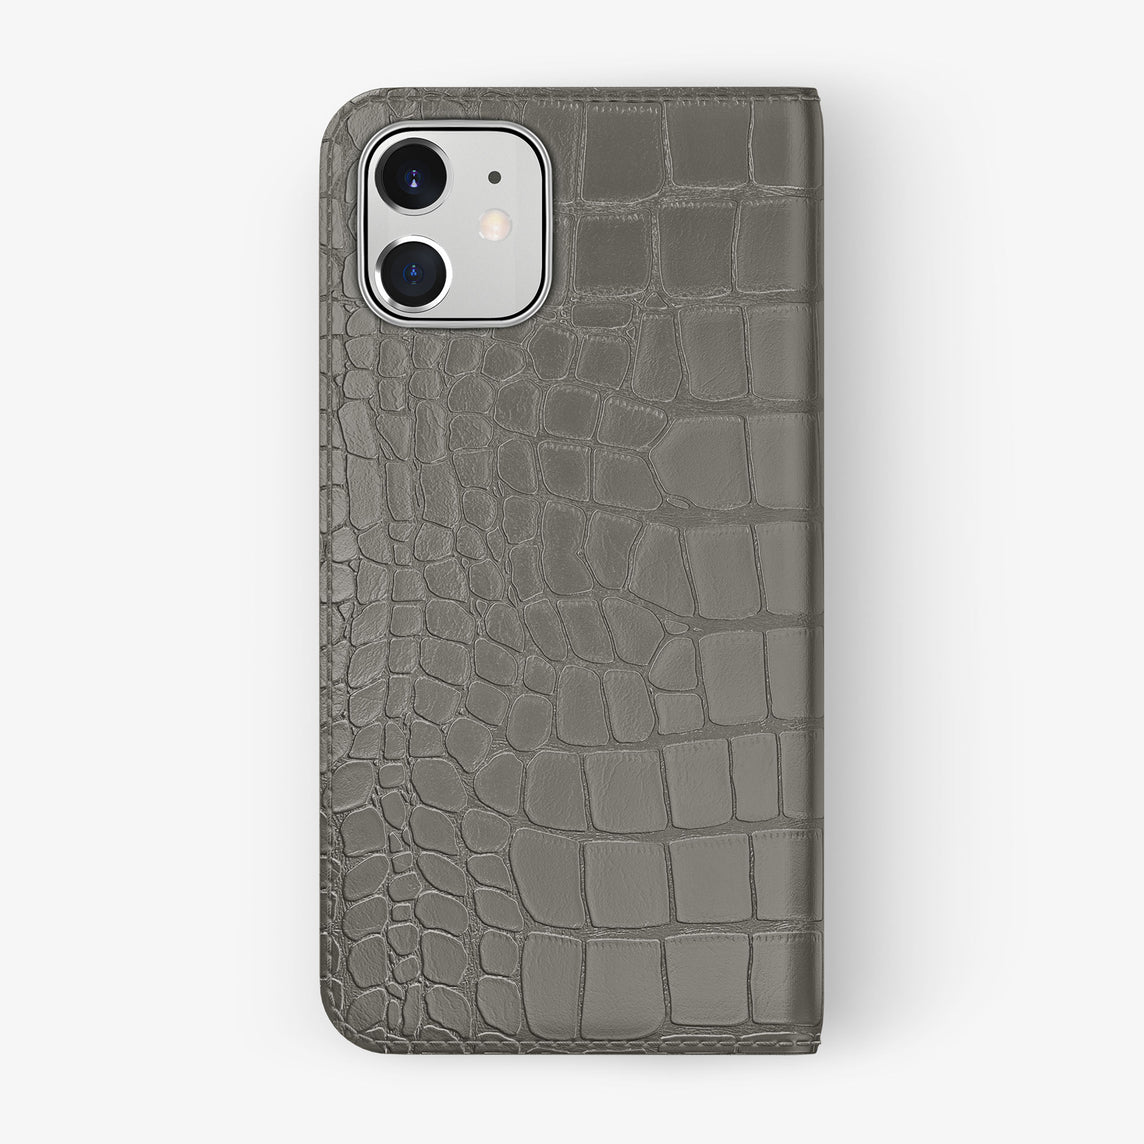 Alligator Folio Case iPhone 11 | Pearl Grey - Stainless Steel